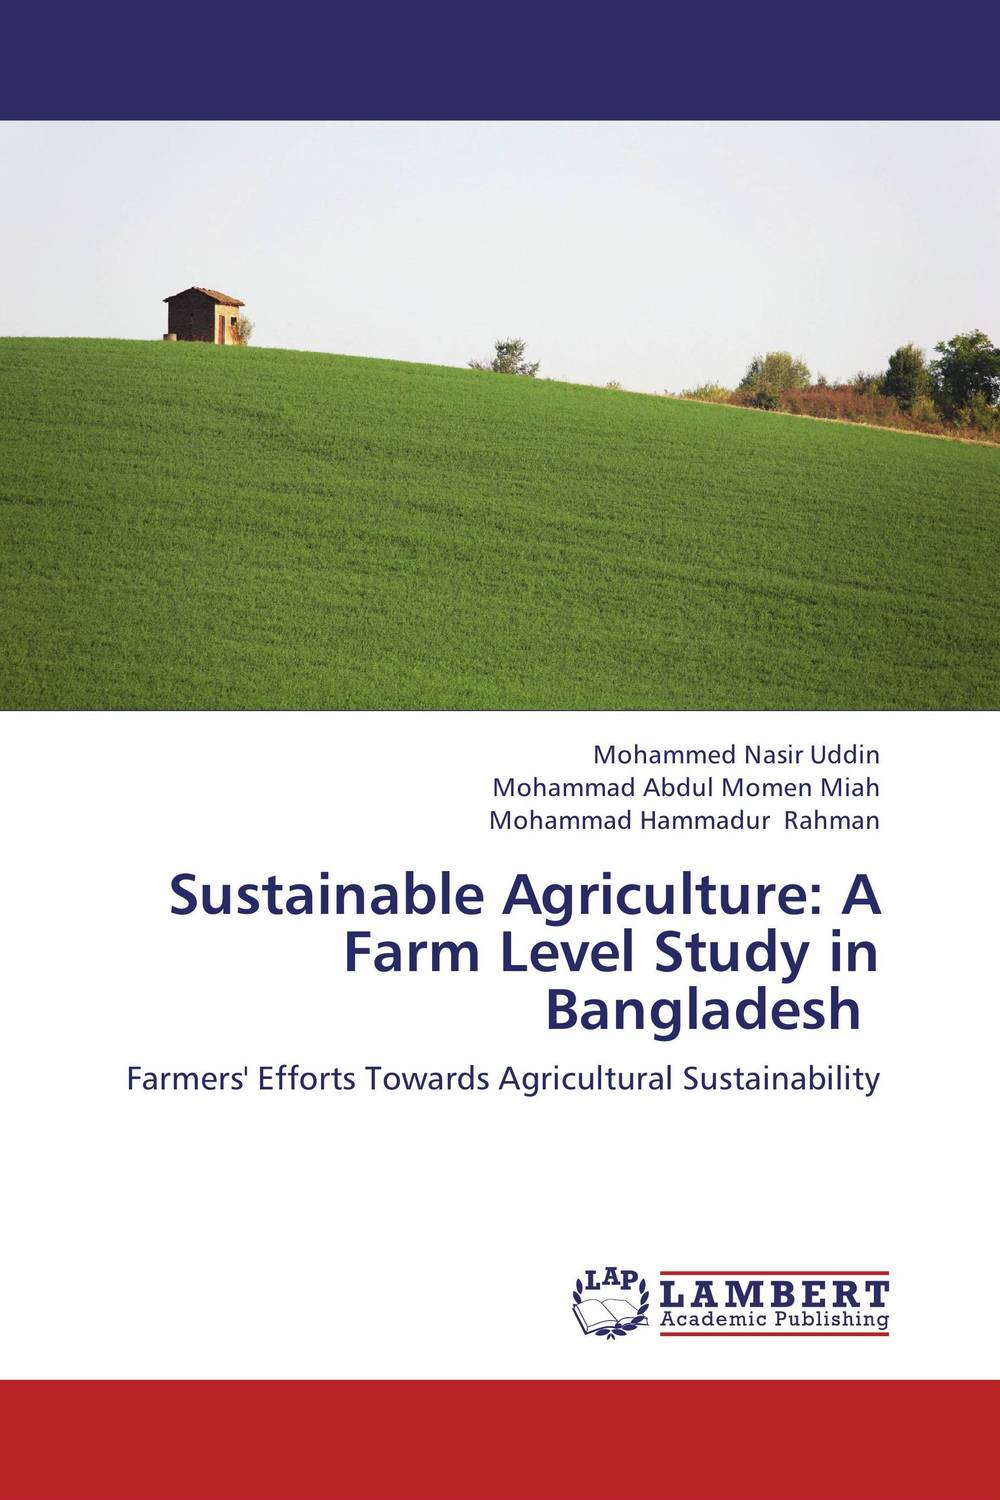 Sustainable Agriculture: A Farm Level Study in Bangladesh administrative corruption in bangladesh a behavioural study